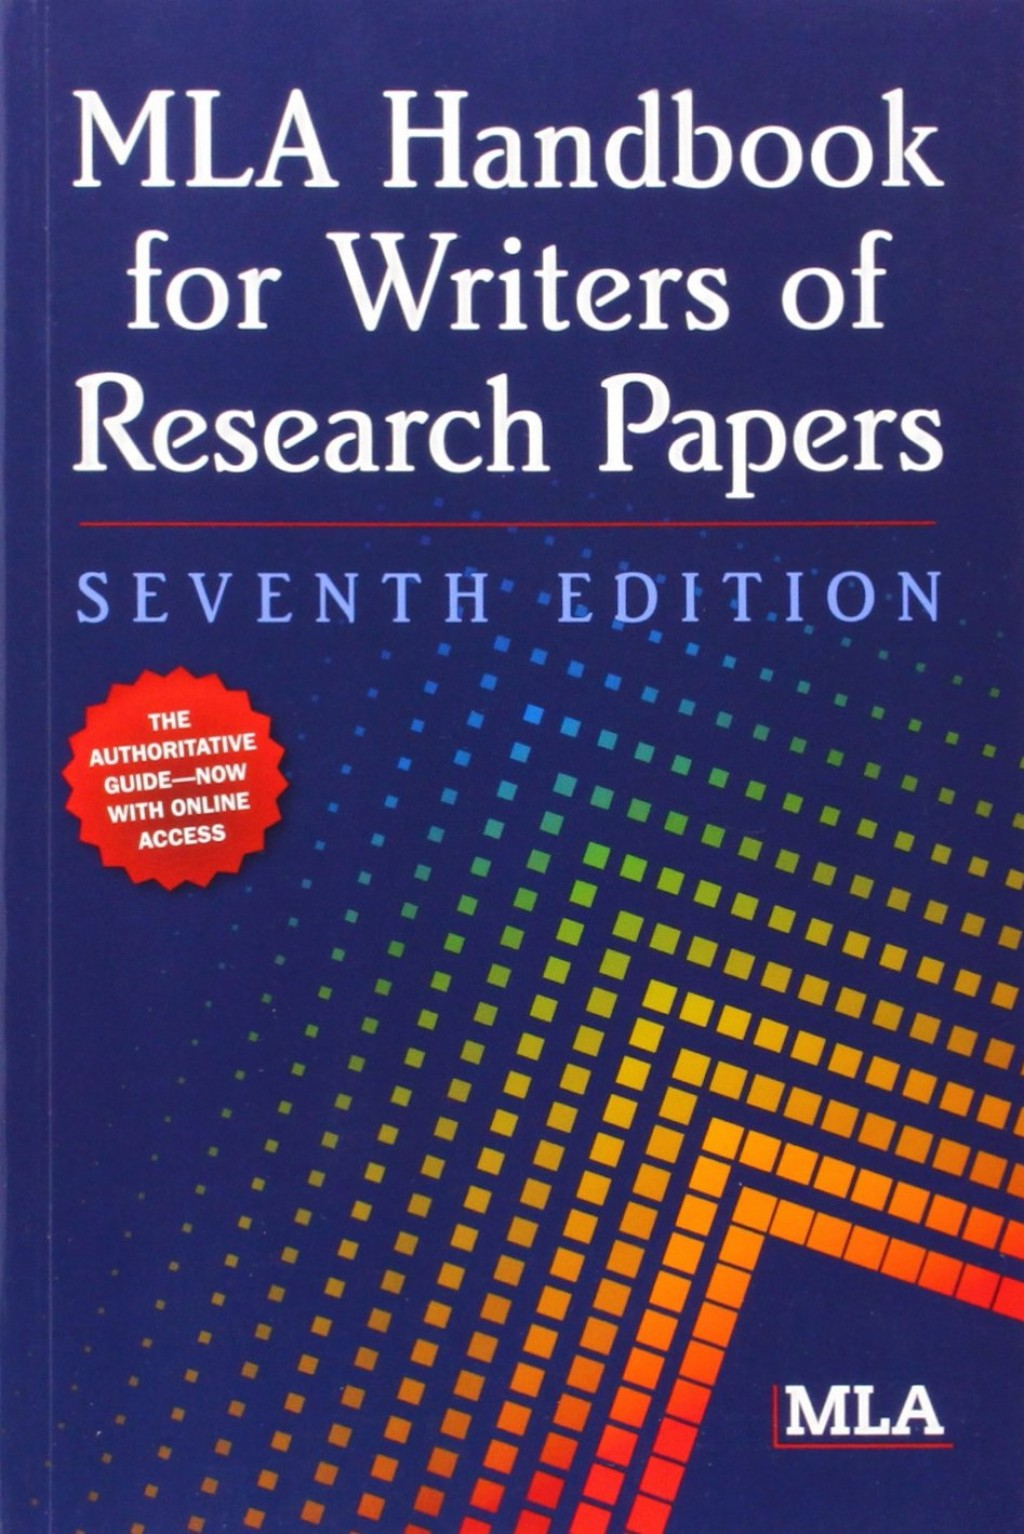 001 71lknvqs6gl Research Paper Mla Handbook For Writers Of Papers 7th Edition Pdf Fearsome Download Free Large